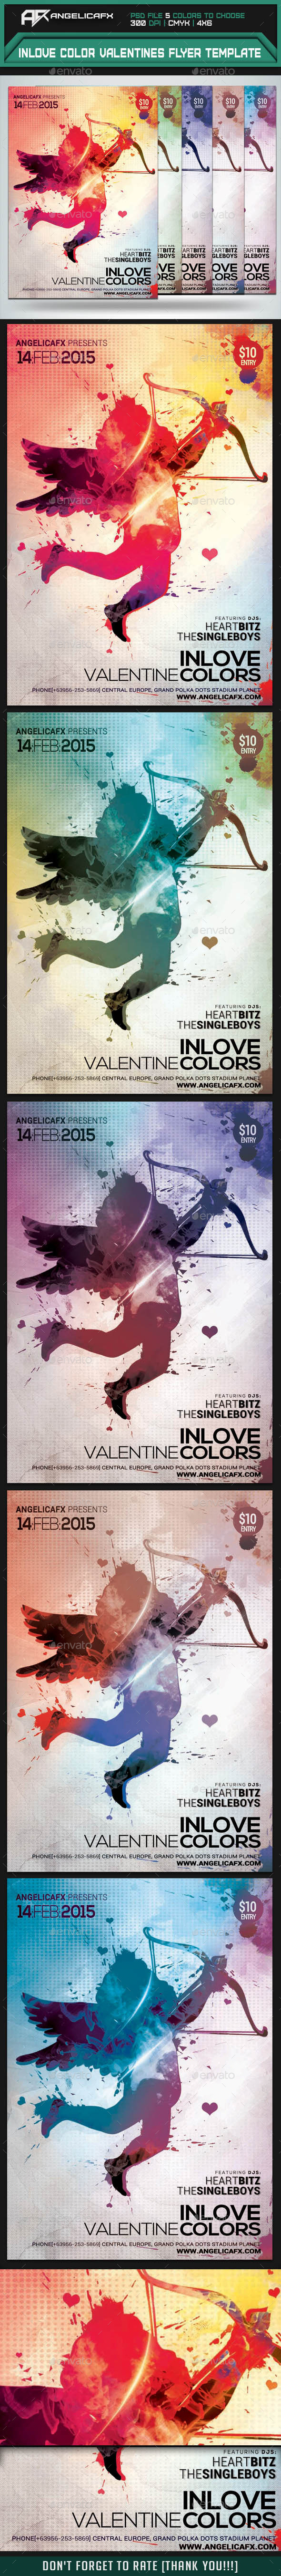 GraphicRiver Inlove Valentine Colors Flyer Template 9951228